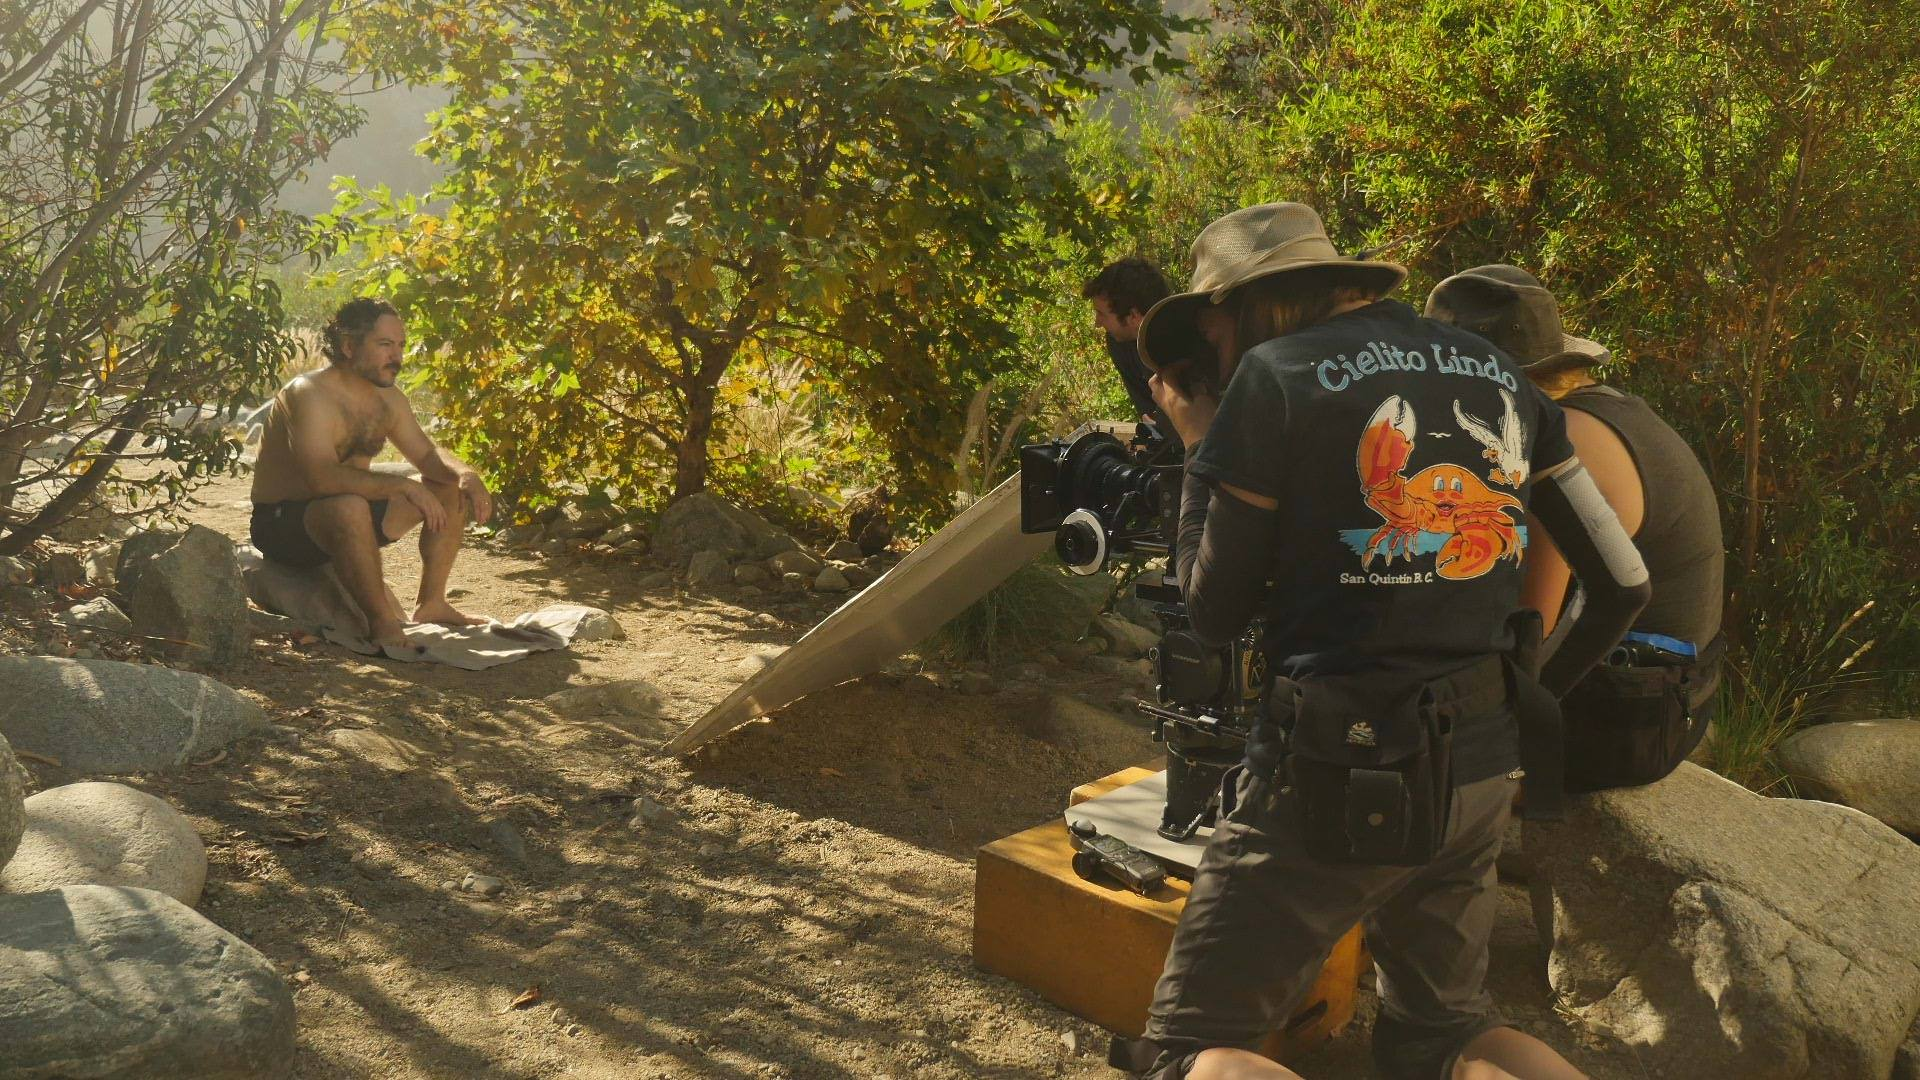 Filming Charlie Pecoraro as 'Chris' during the 1st weekend of 'Malacostraca.'